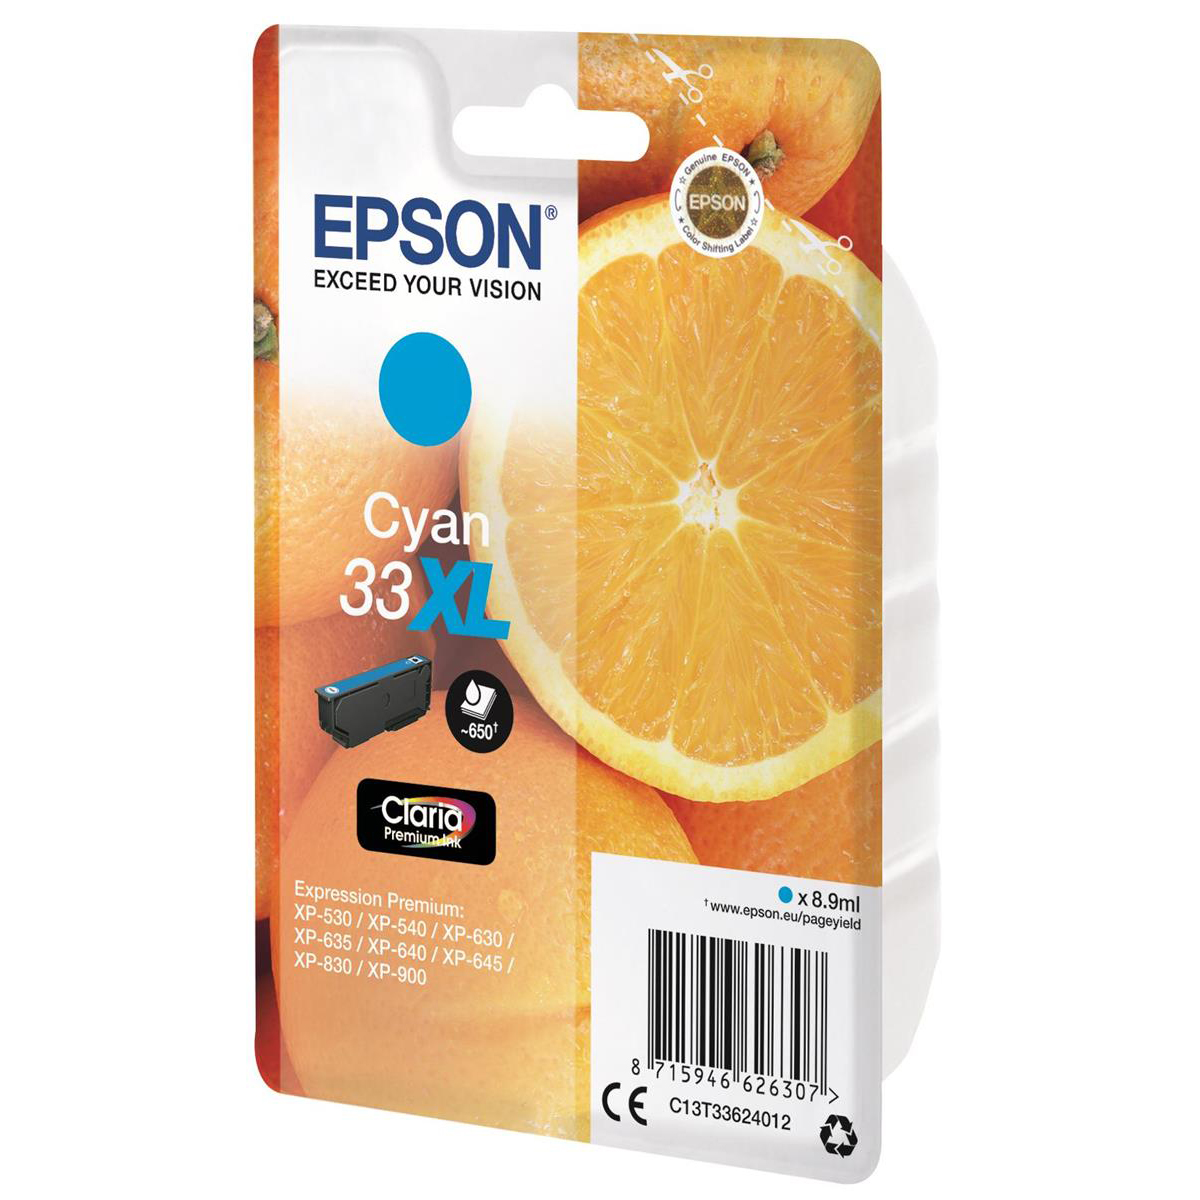 Epson T33XL Inkjet Cartridge Orange High Yield Page Life 650pp 8.9ml Cyan Ref C13T33624012